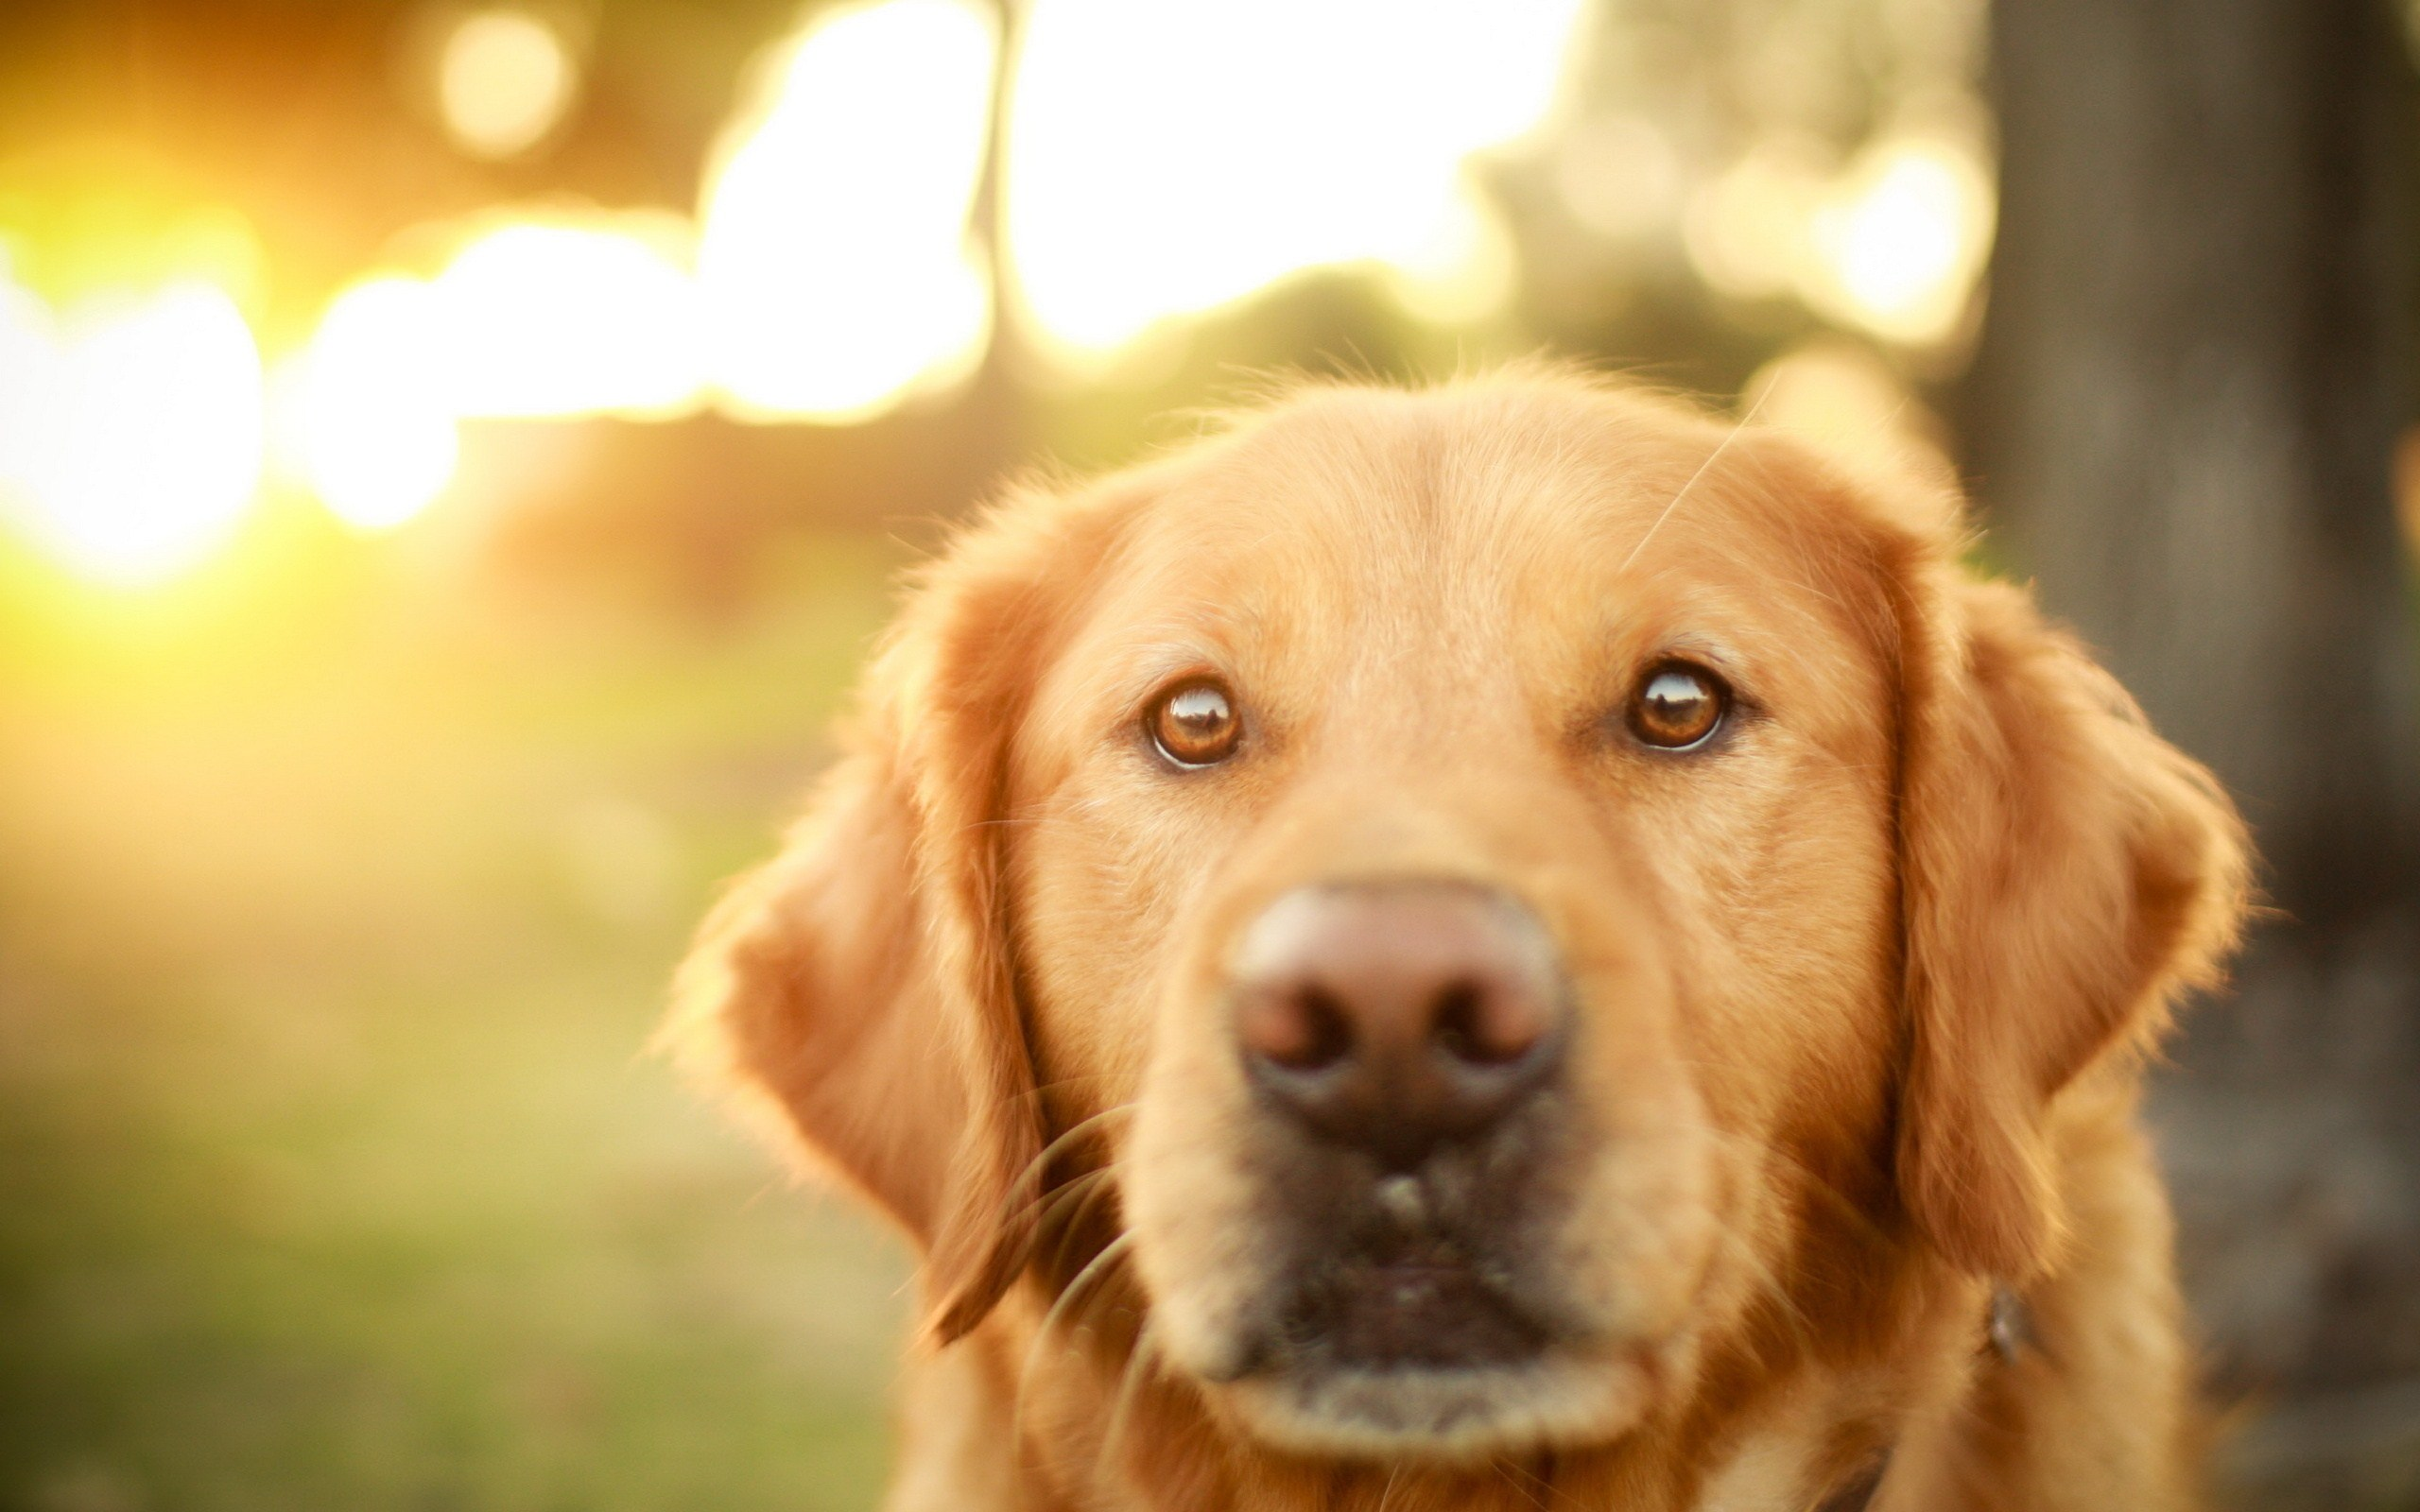 dog close up wallpaper hd 39592 2560x1600 px ~ hdwallsource